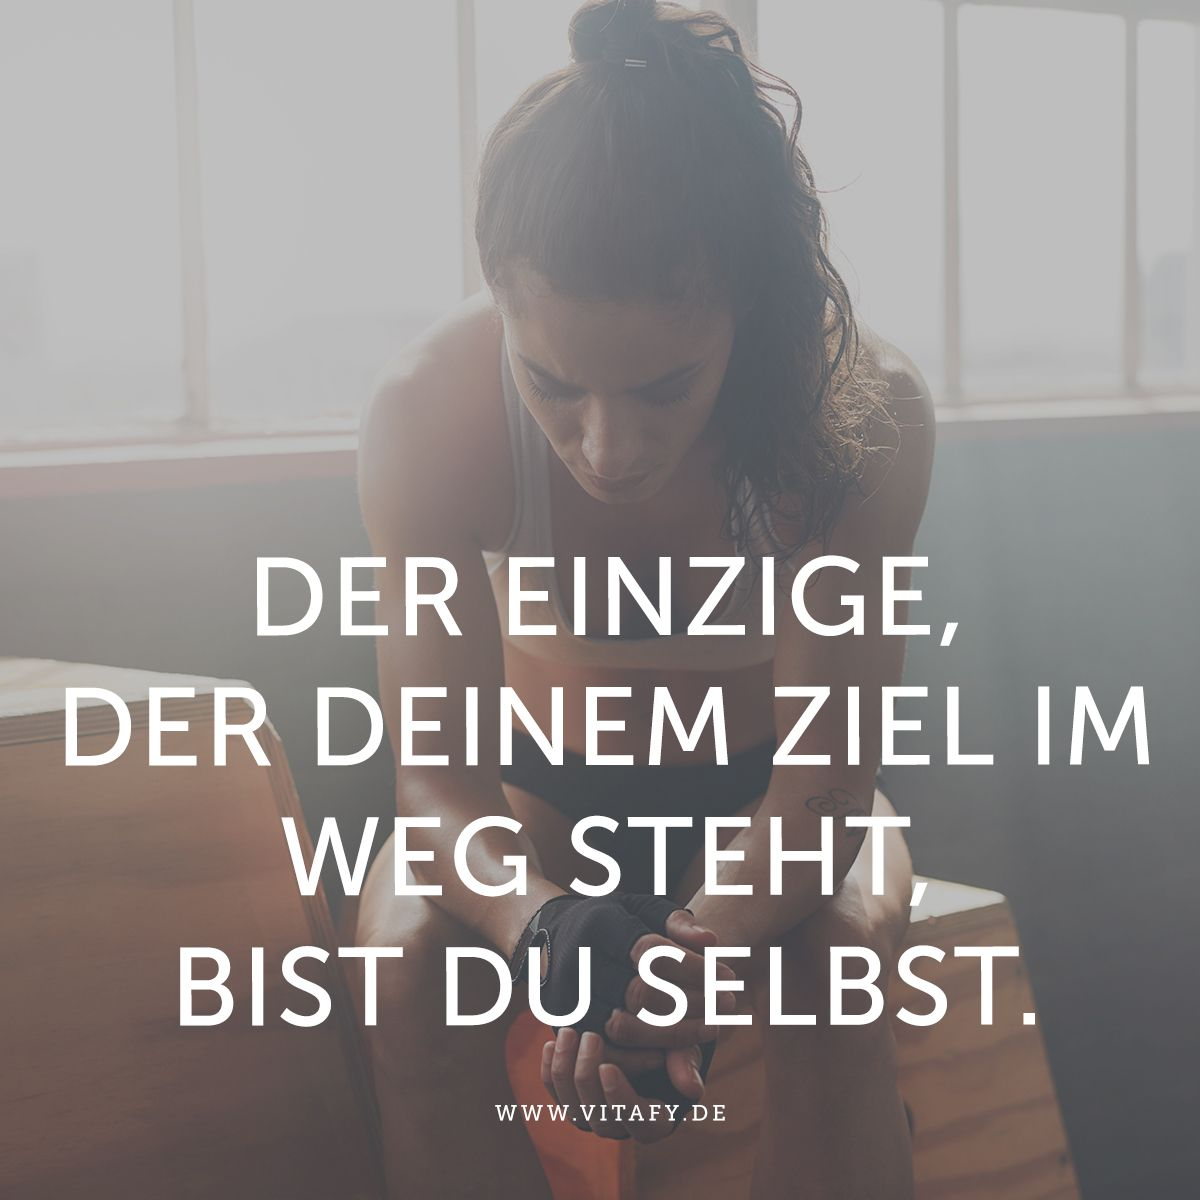 Motivationmonday Fitness Motivation Inspiration Dontquit Sweatdaily Spruche Motivation Sportzitate Motivation Montag